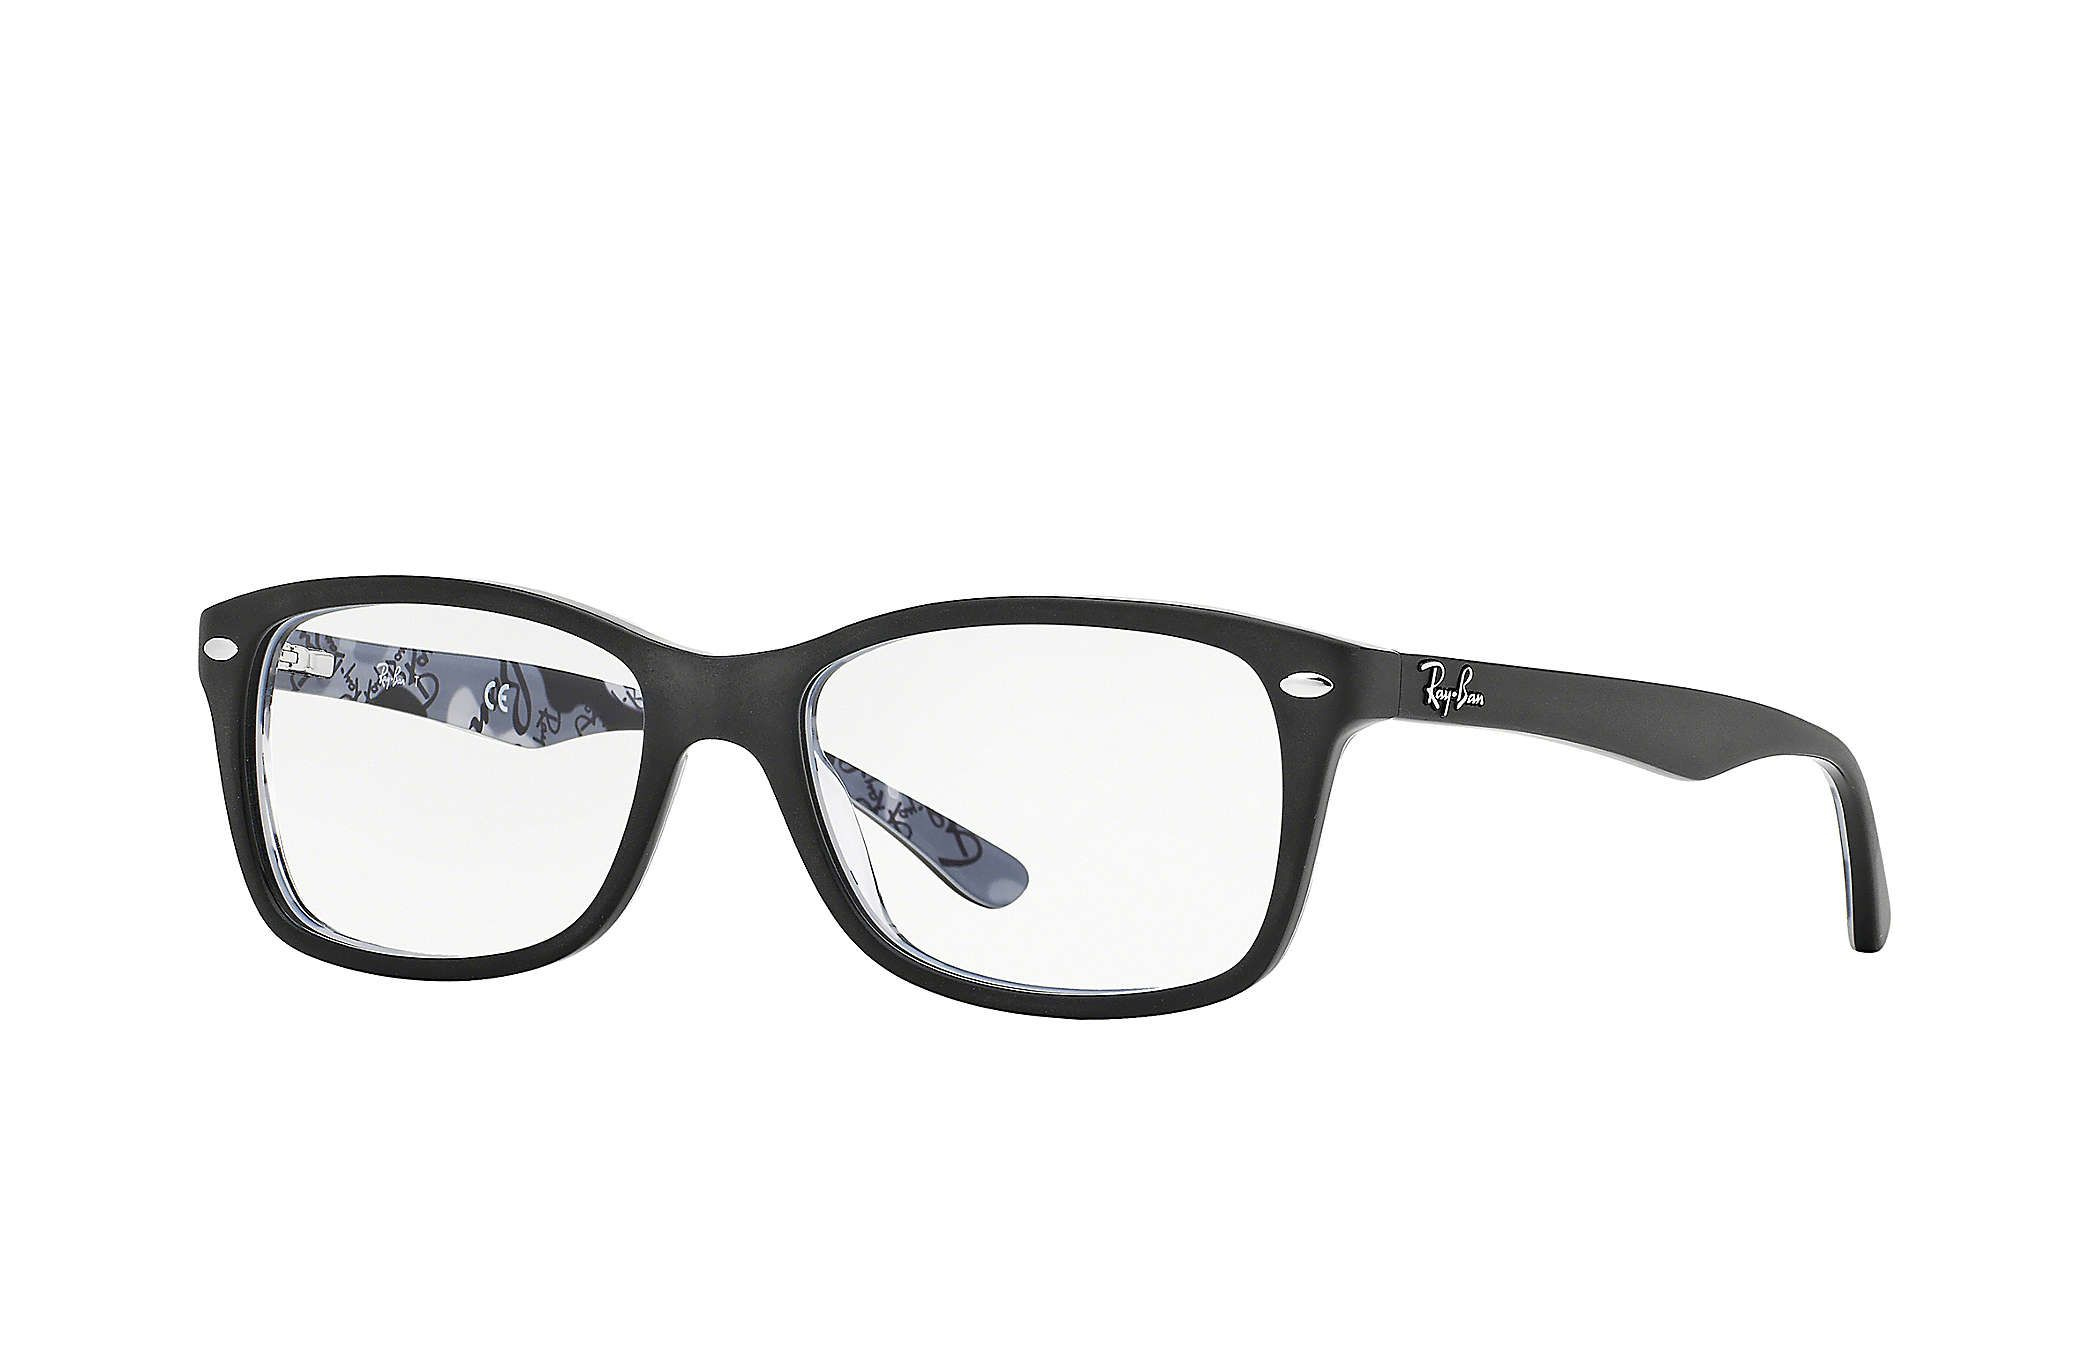 96786445d4e21 Eyeglasses Ray-Ban Optical RX 5206 2445 HAVANA GREEN. February 2019. Ray-Ban  Eyeglasses RB5206 5206 2445 Havana Green RayBan Optical Frame 54mm